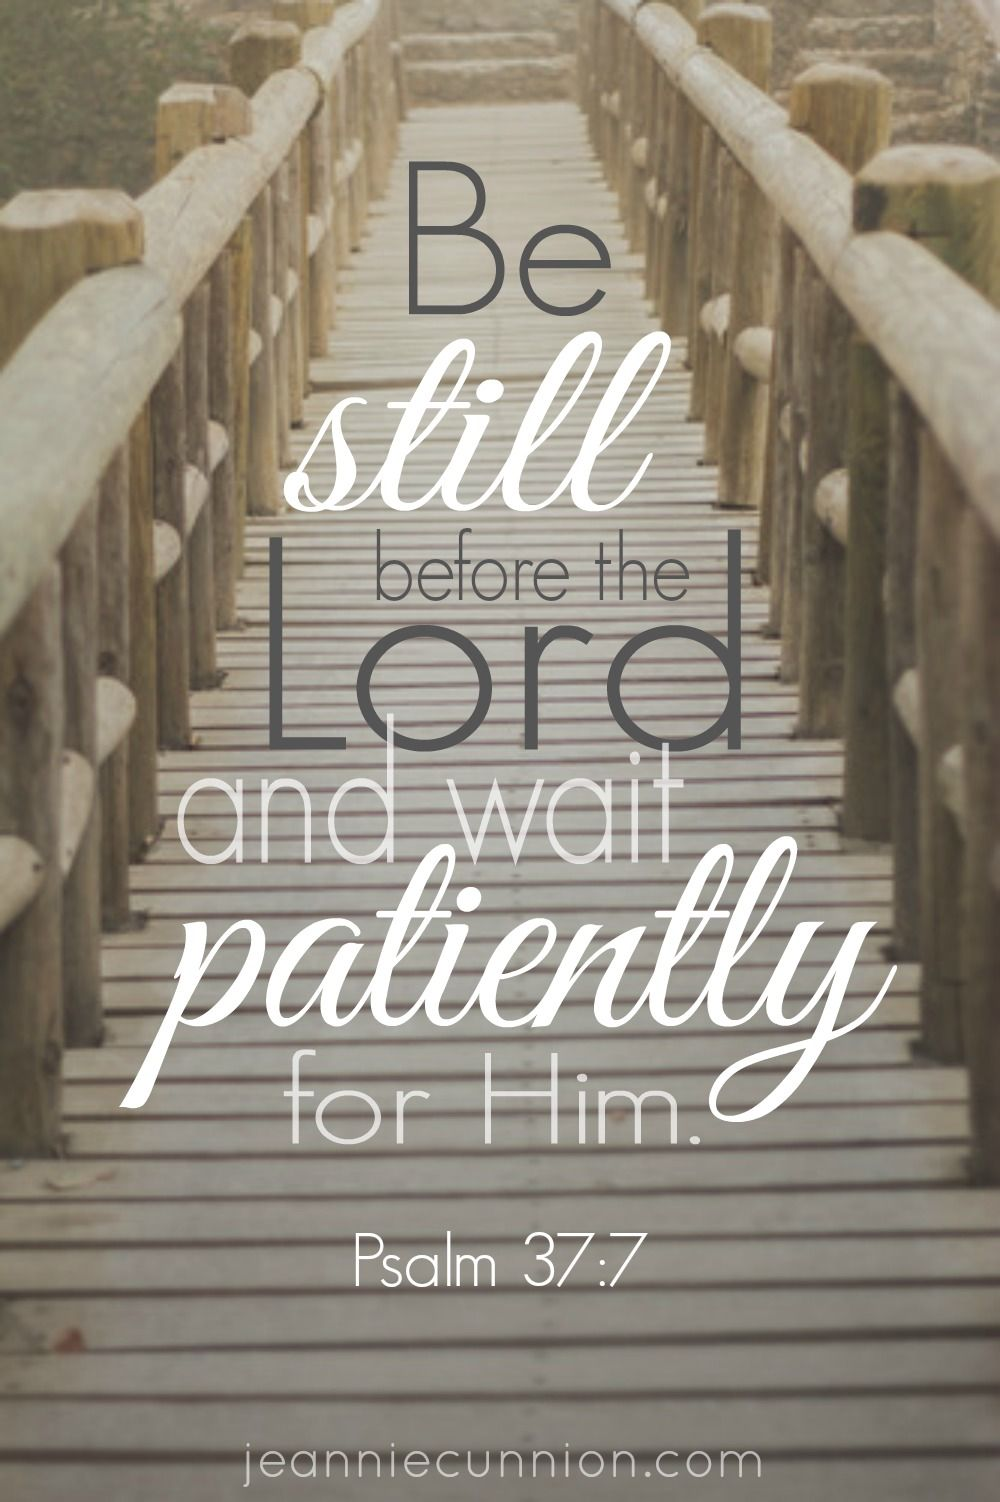 Be still before the lord and wait patiently for him read about be still before the lord and wait patiently for him read about parenting the wholehearted patience quotesbible verses buycottarizona Images